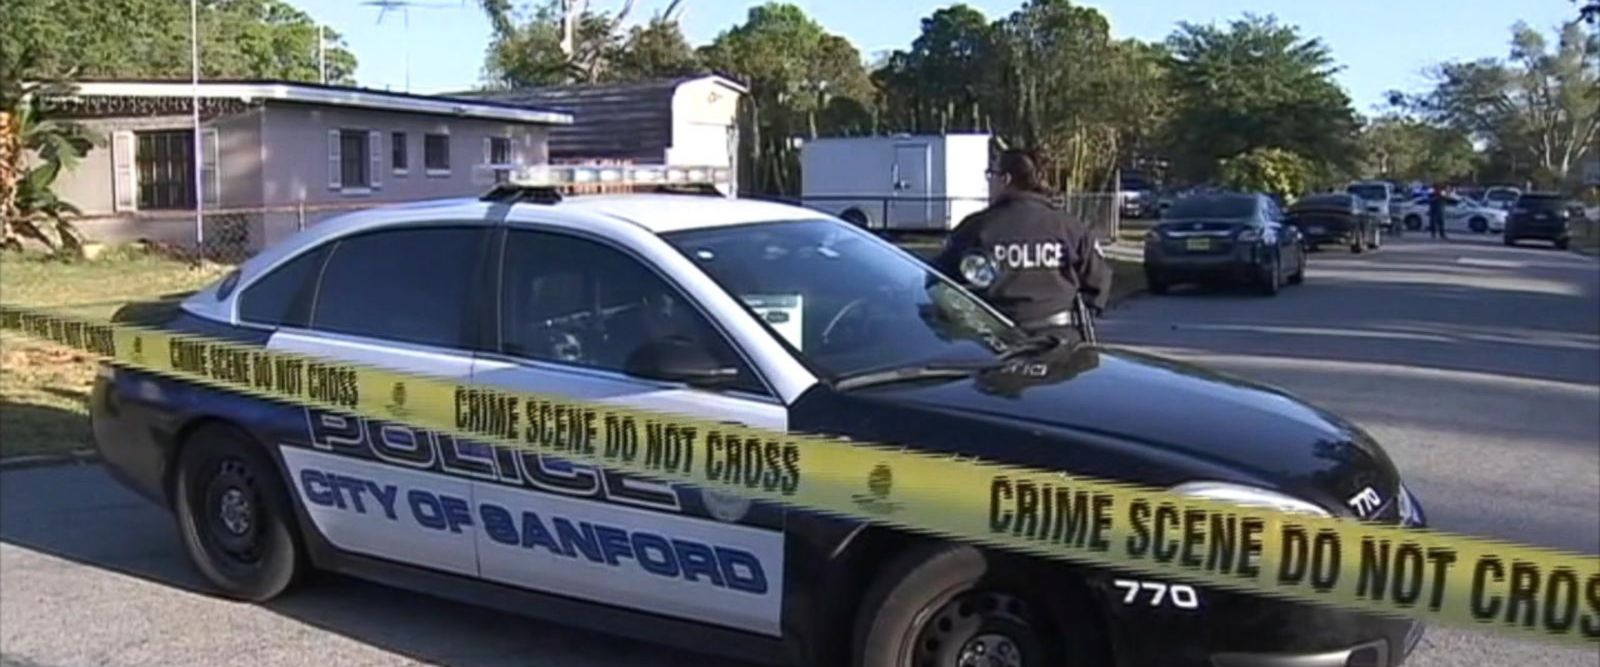 VIDEO: Deadly shooting rampage in Sanford, Florida